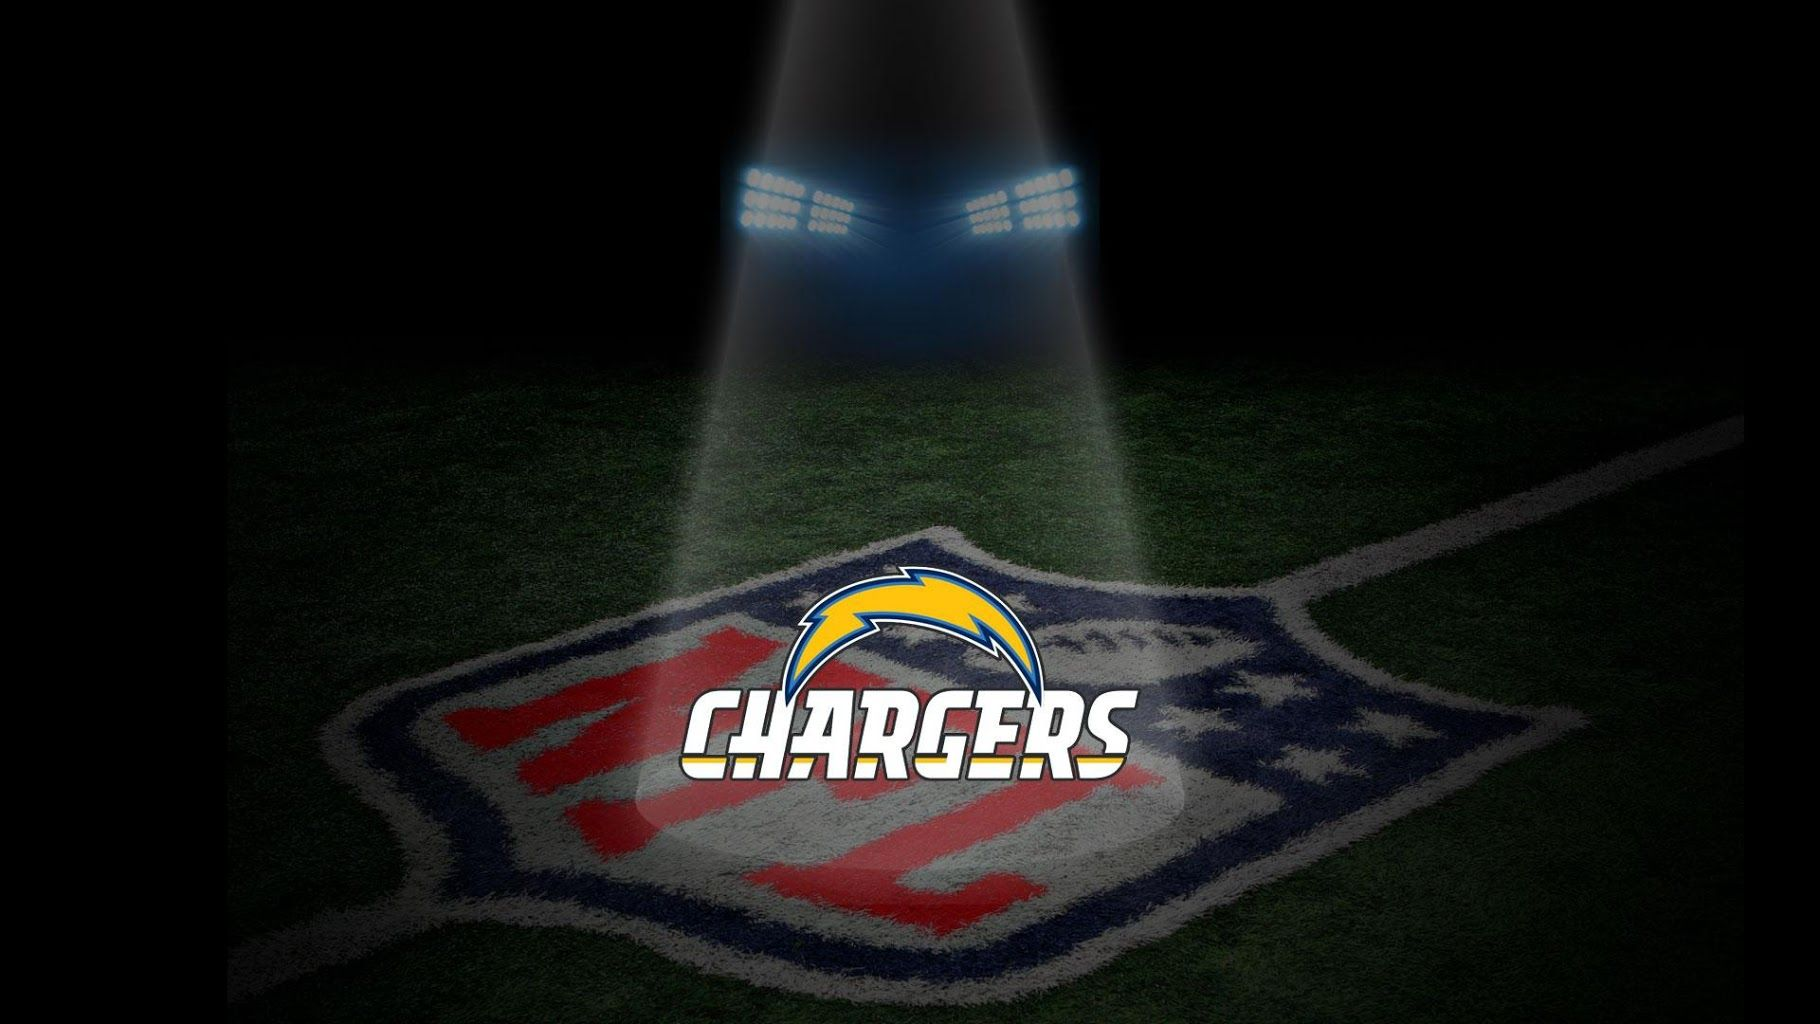 (1820x1024 px) - Chargers Wallpapers, Garland Westcott